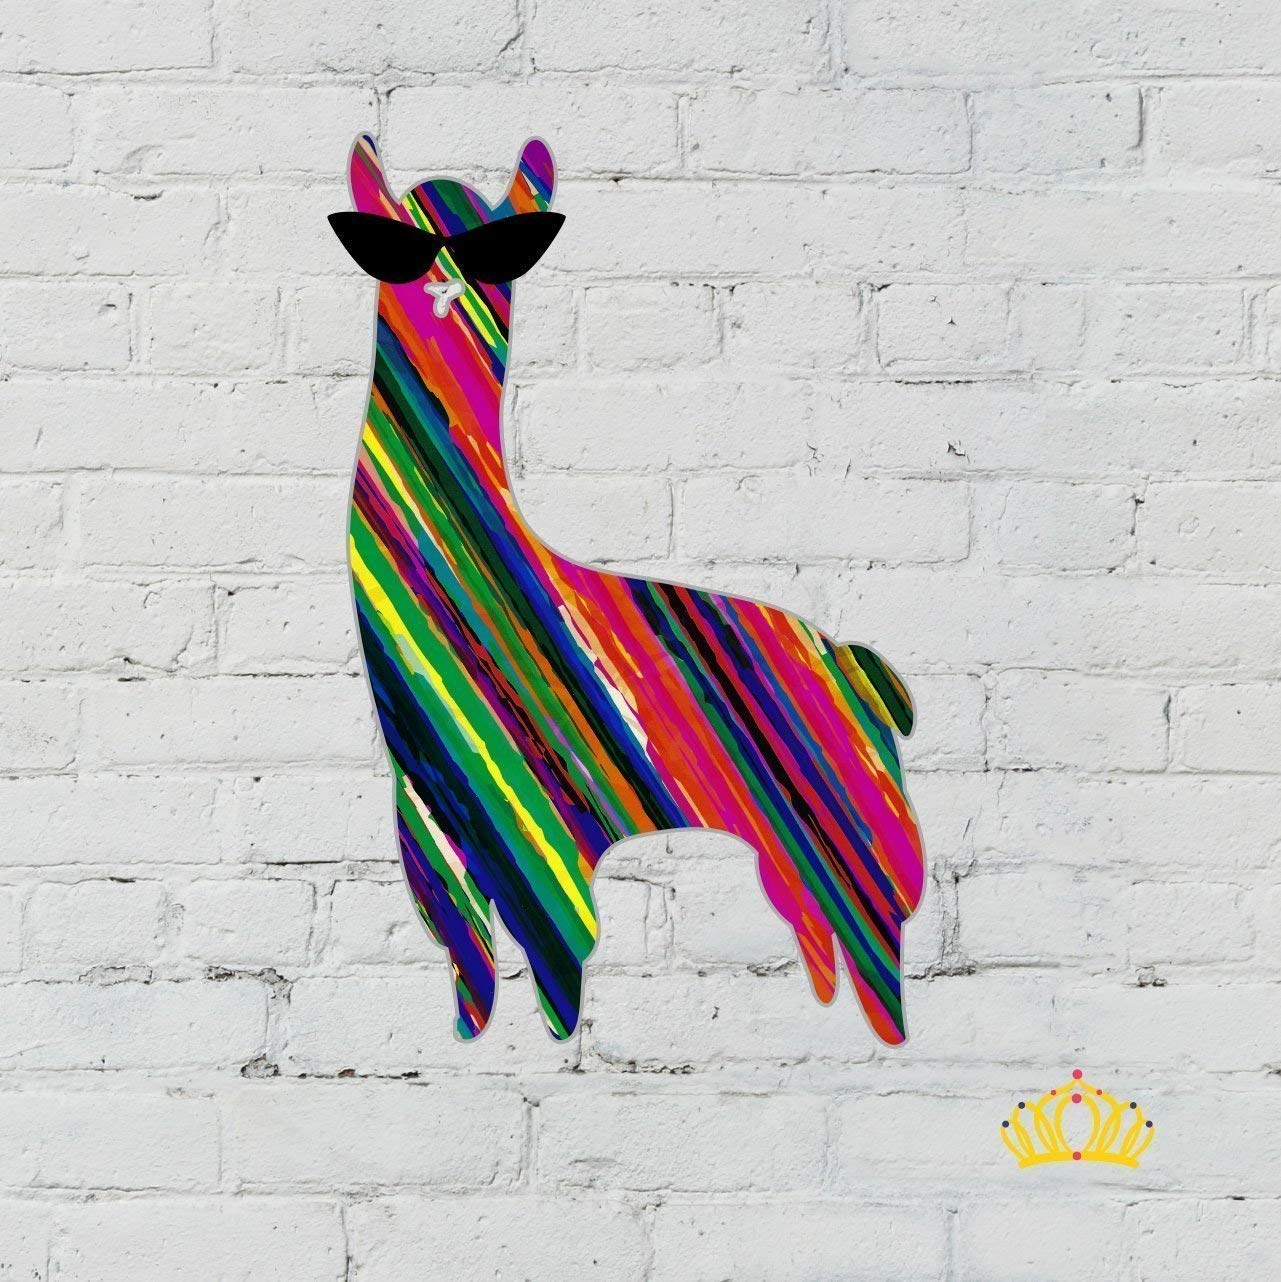 Serape Pattern Llama Decal for Car, Cup, Tumbler, or Laptop - 3.5 inches